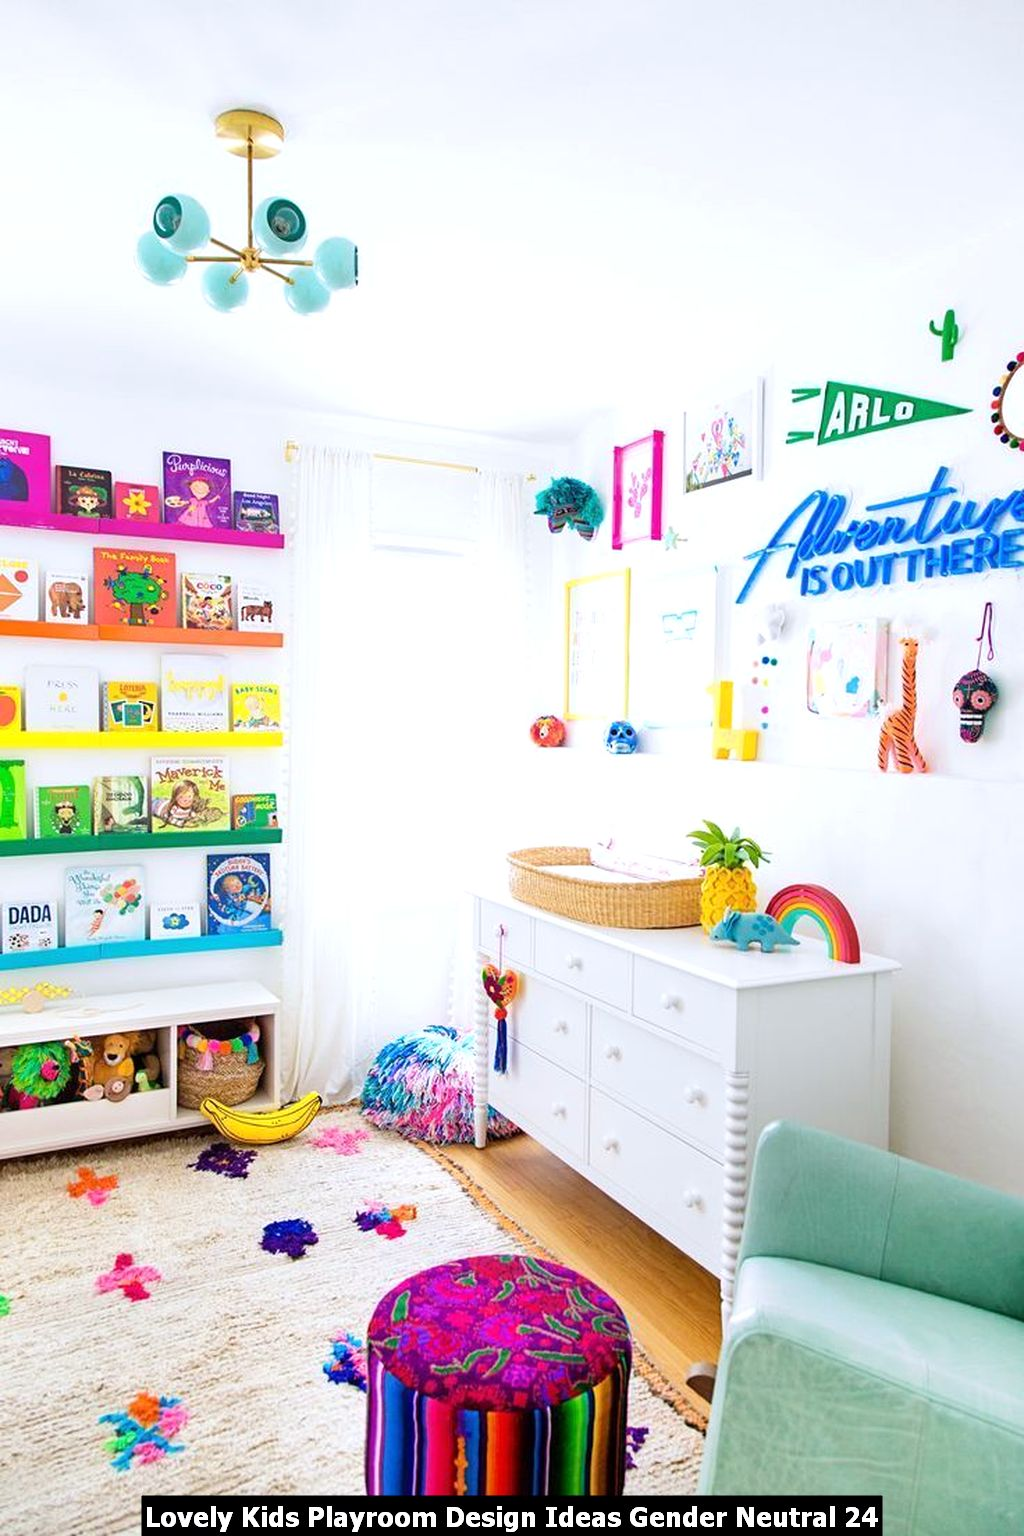 Lovely Kids Playroom Design Ideas Gender Neutral 24